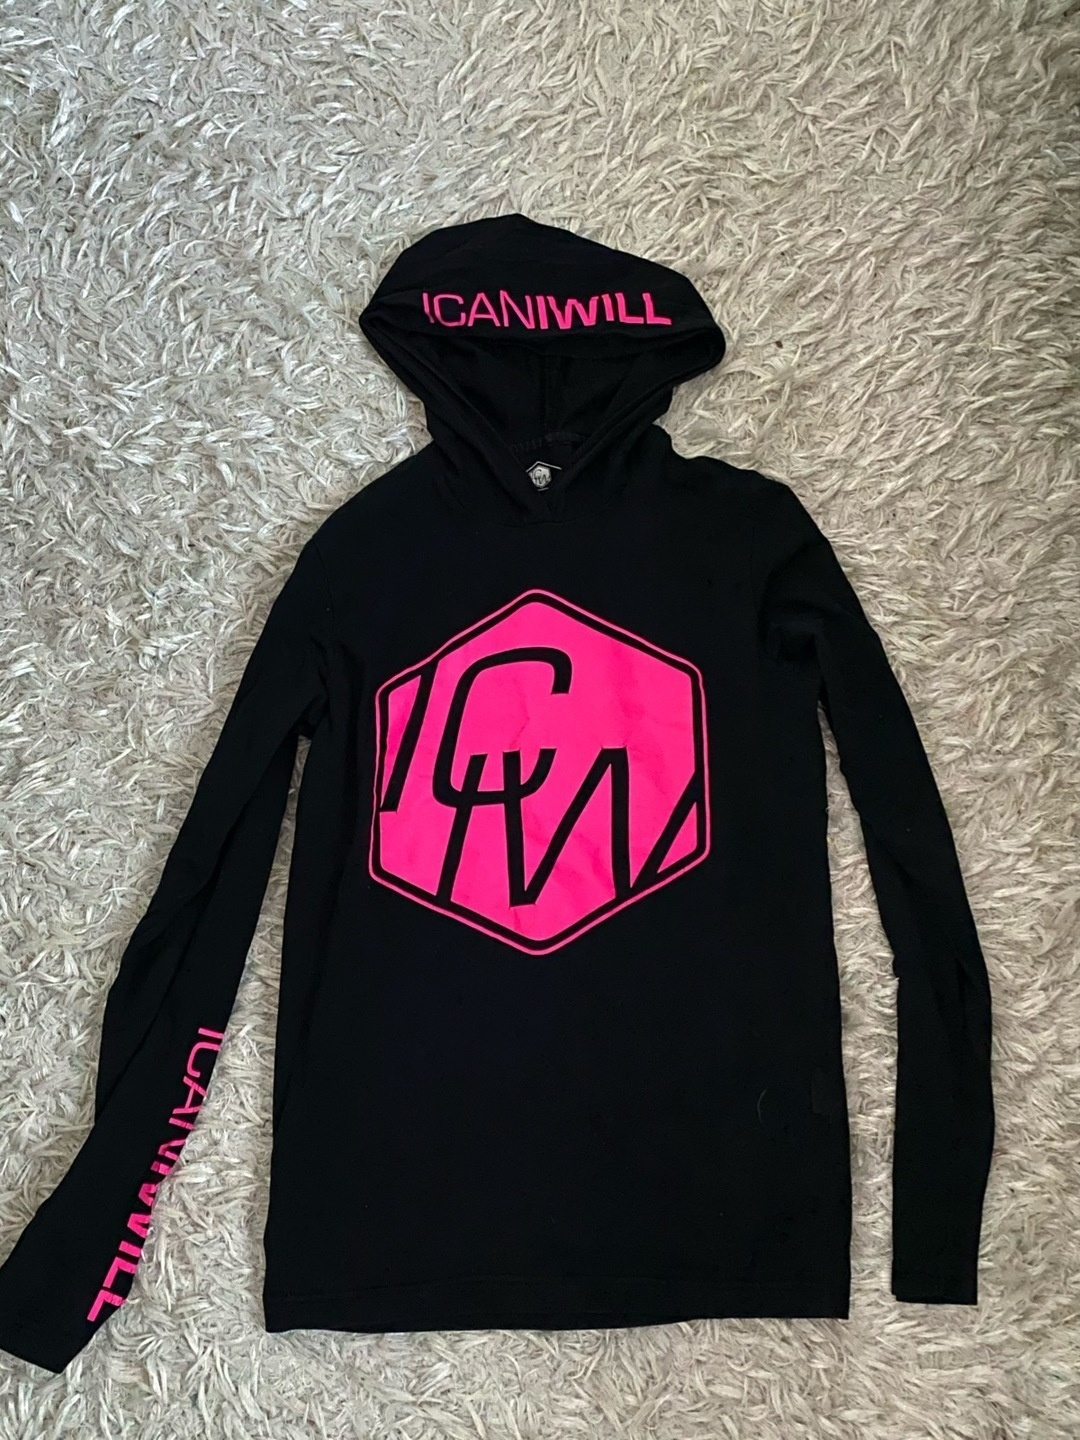 Women's hoodies & sweatshirts - ICANIWILL photo 1